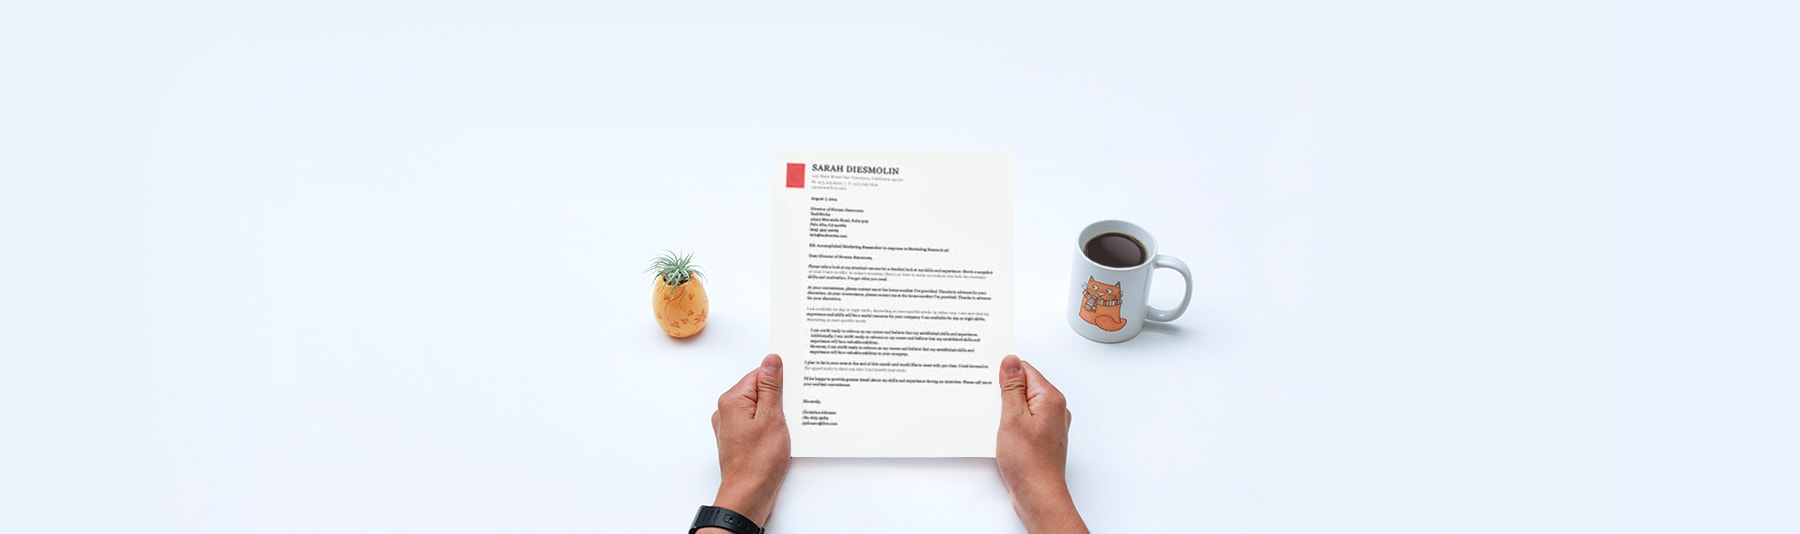 Order essay for one page,do my assignement   - MediMoon niw sample